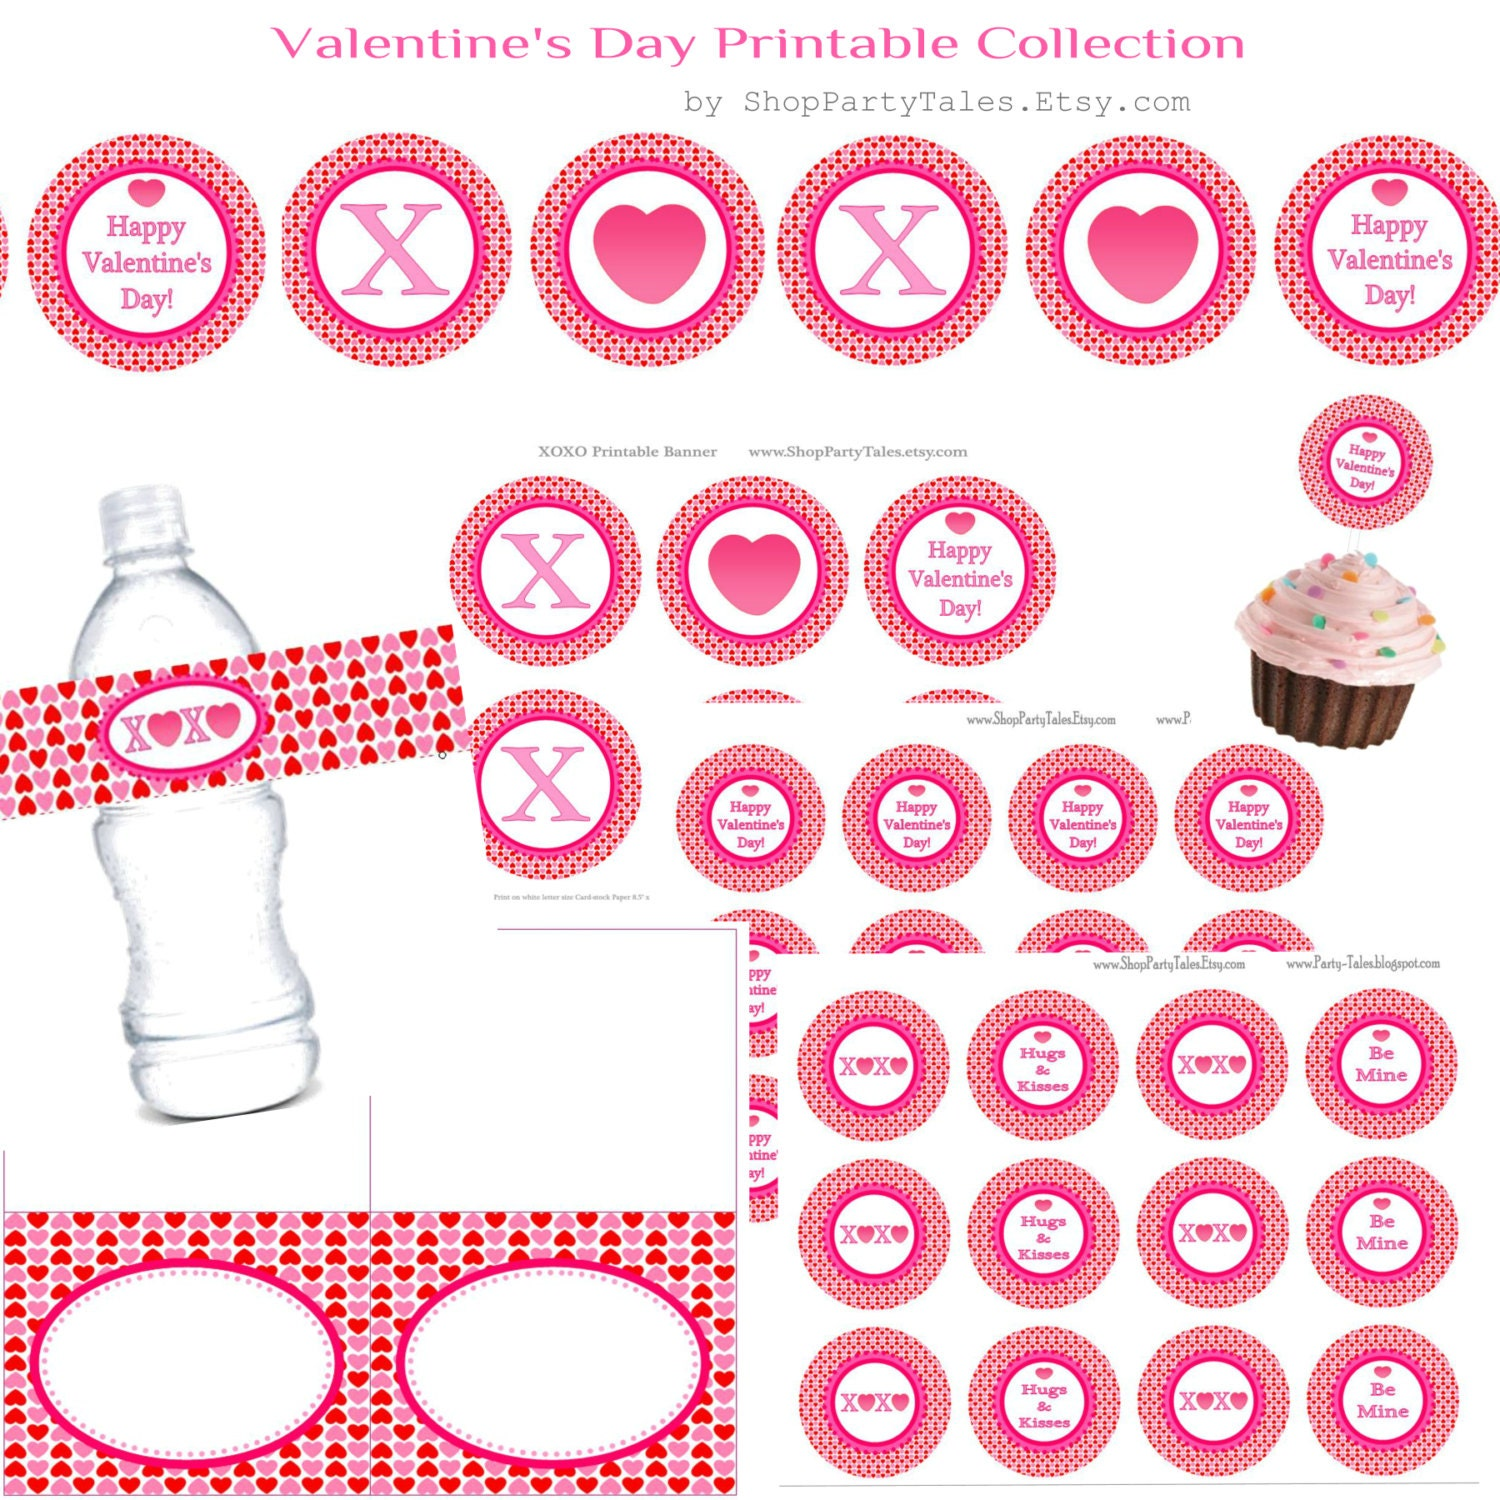 Valentine's Day party COLLECTION cupcake toppers by ShopPartyTales